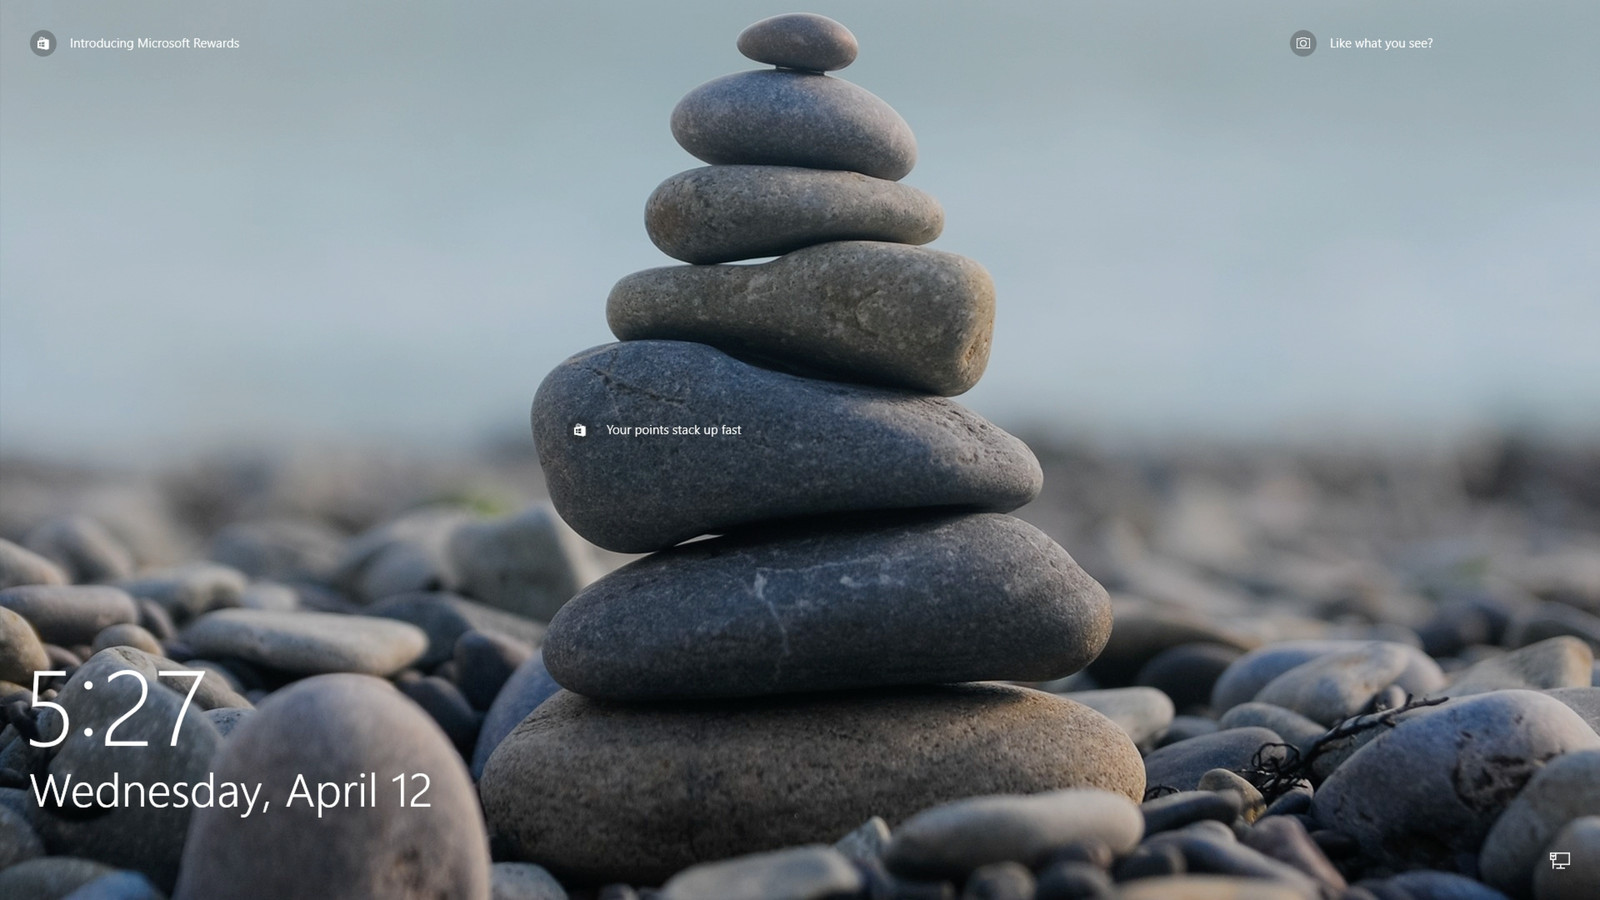 You can totally get rid of that stupid ad on the Windows 10 lock screen